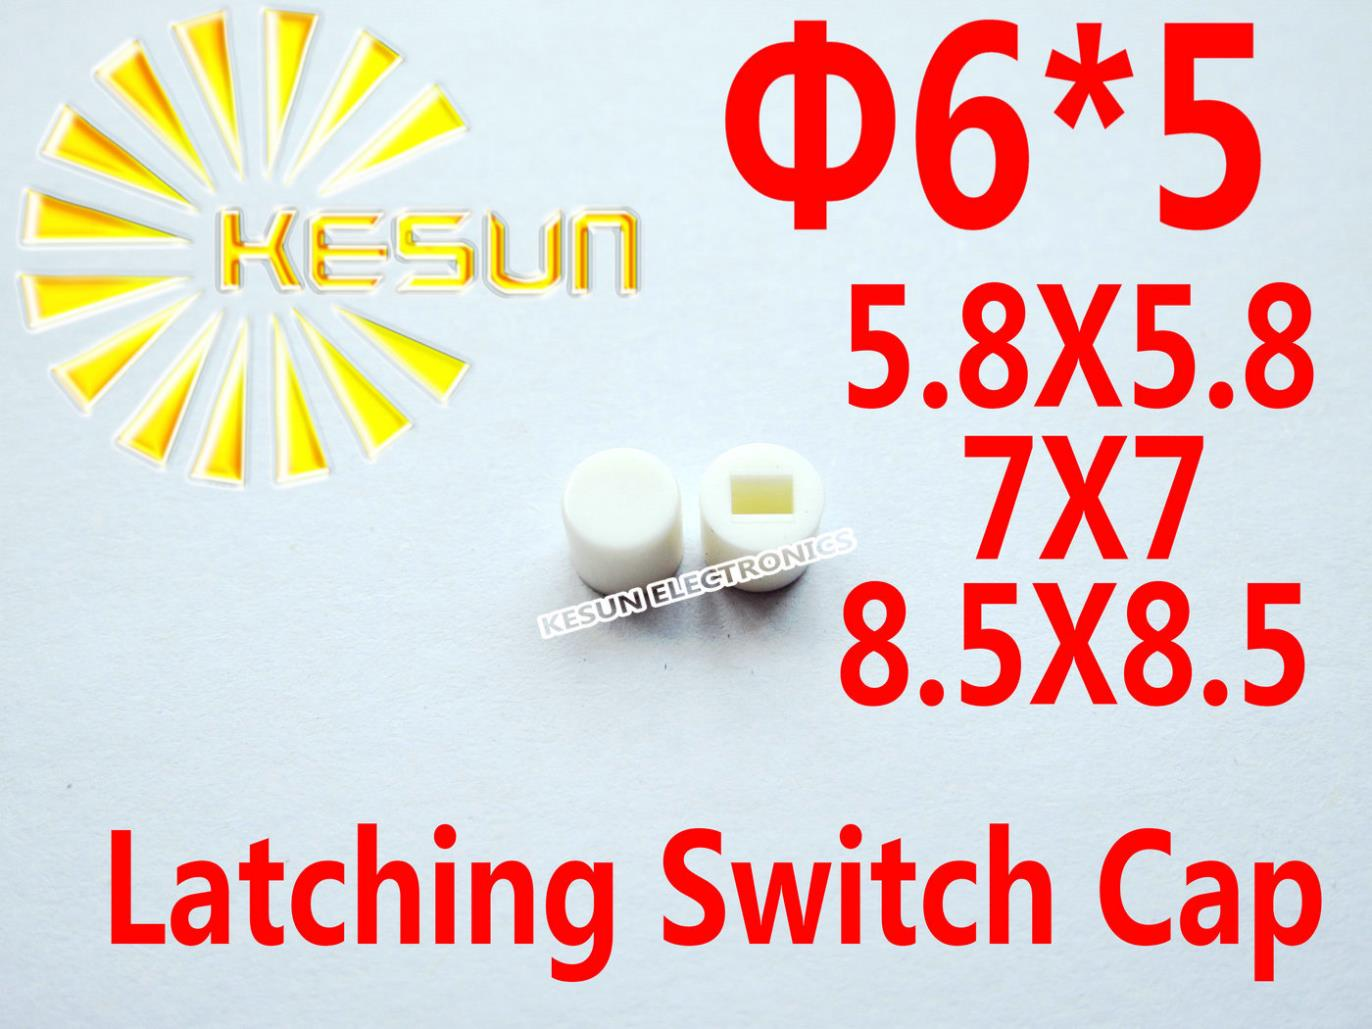 Electronic Components & Supplies Integrated Circuits Symbol Of The Brand 1000pcs White Cap For 5.8x5.8 7x7 8.5x8.5 Latching Switch Self-lock Push Button Switch